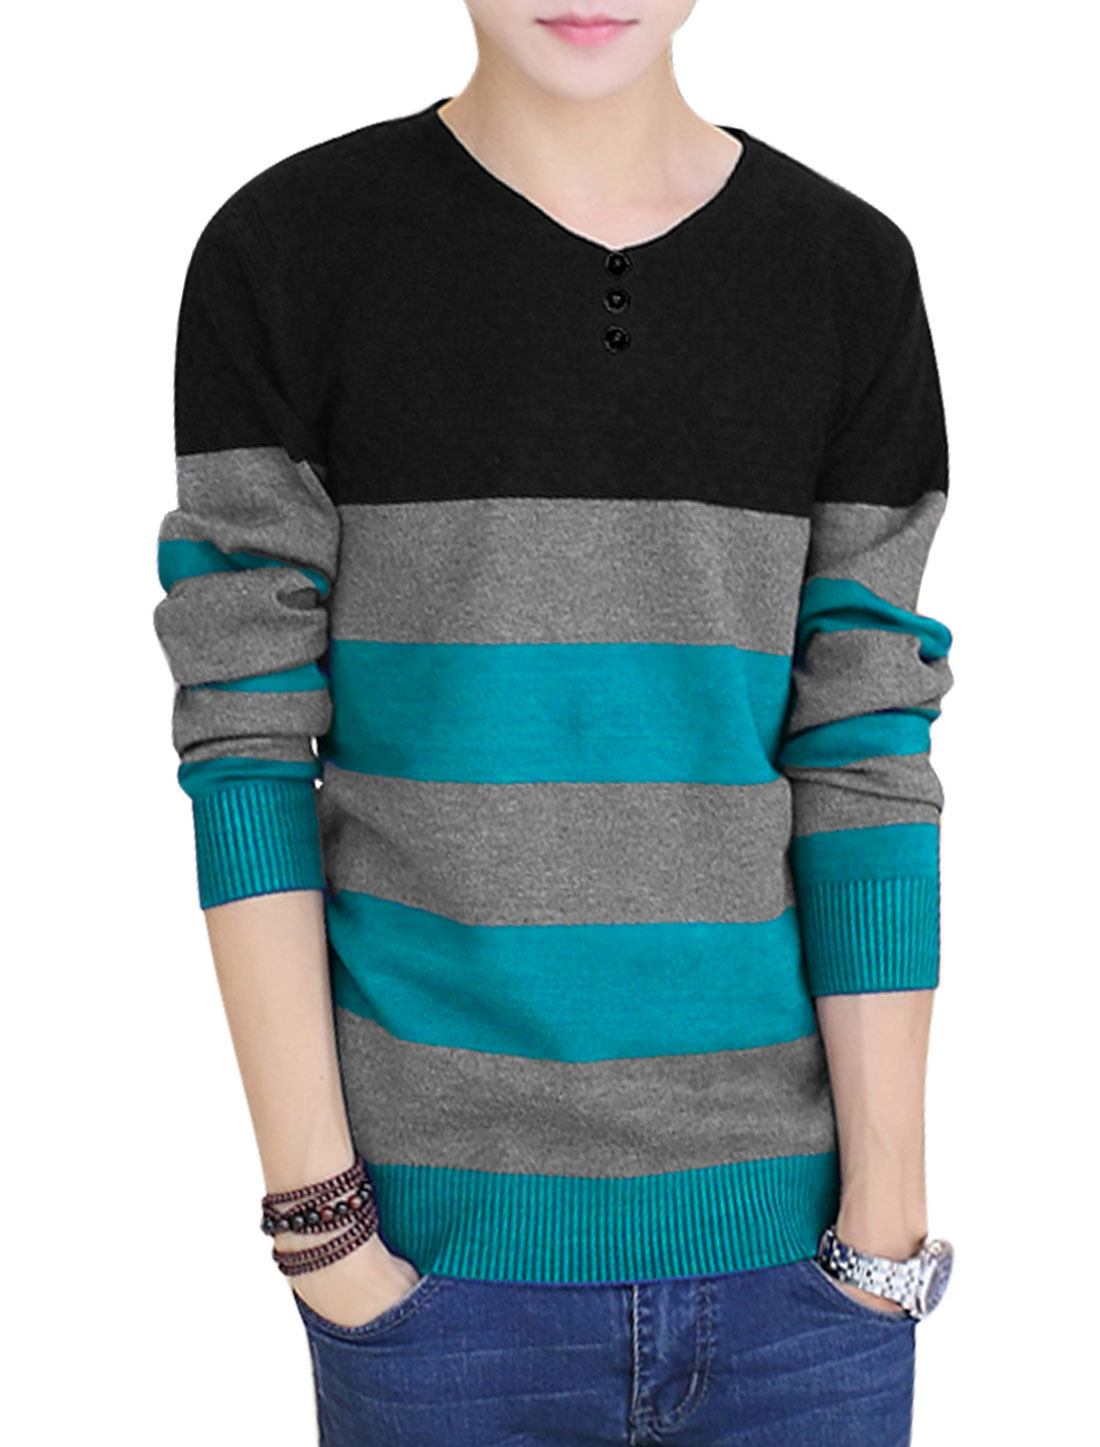 Men Black Royal Blue Pullover Color Block Weaven Decor Ribbed Cuffs Knit Shirt S